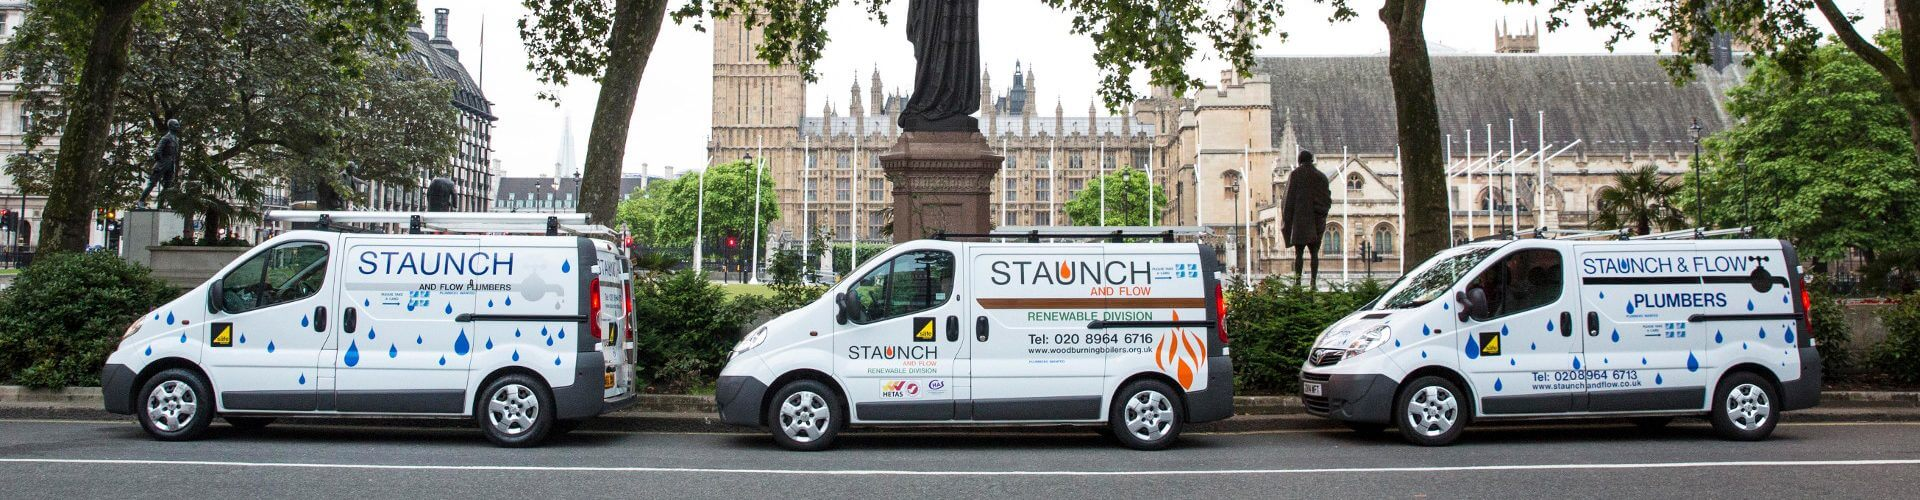 Expert, Friendly and FastLondon PlumbersTo Assist You, FastWe'll Make Straightforward Repairs Straight Away or Locate the Problem and Lock Down Your Costs ImmediatelyEmail Us At: info@staunchandflow.co.ukCheck Our Rates